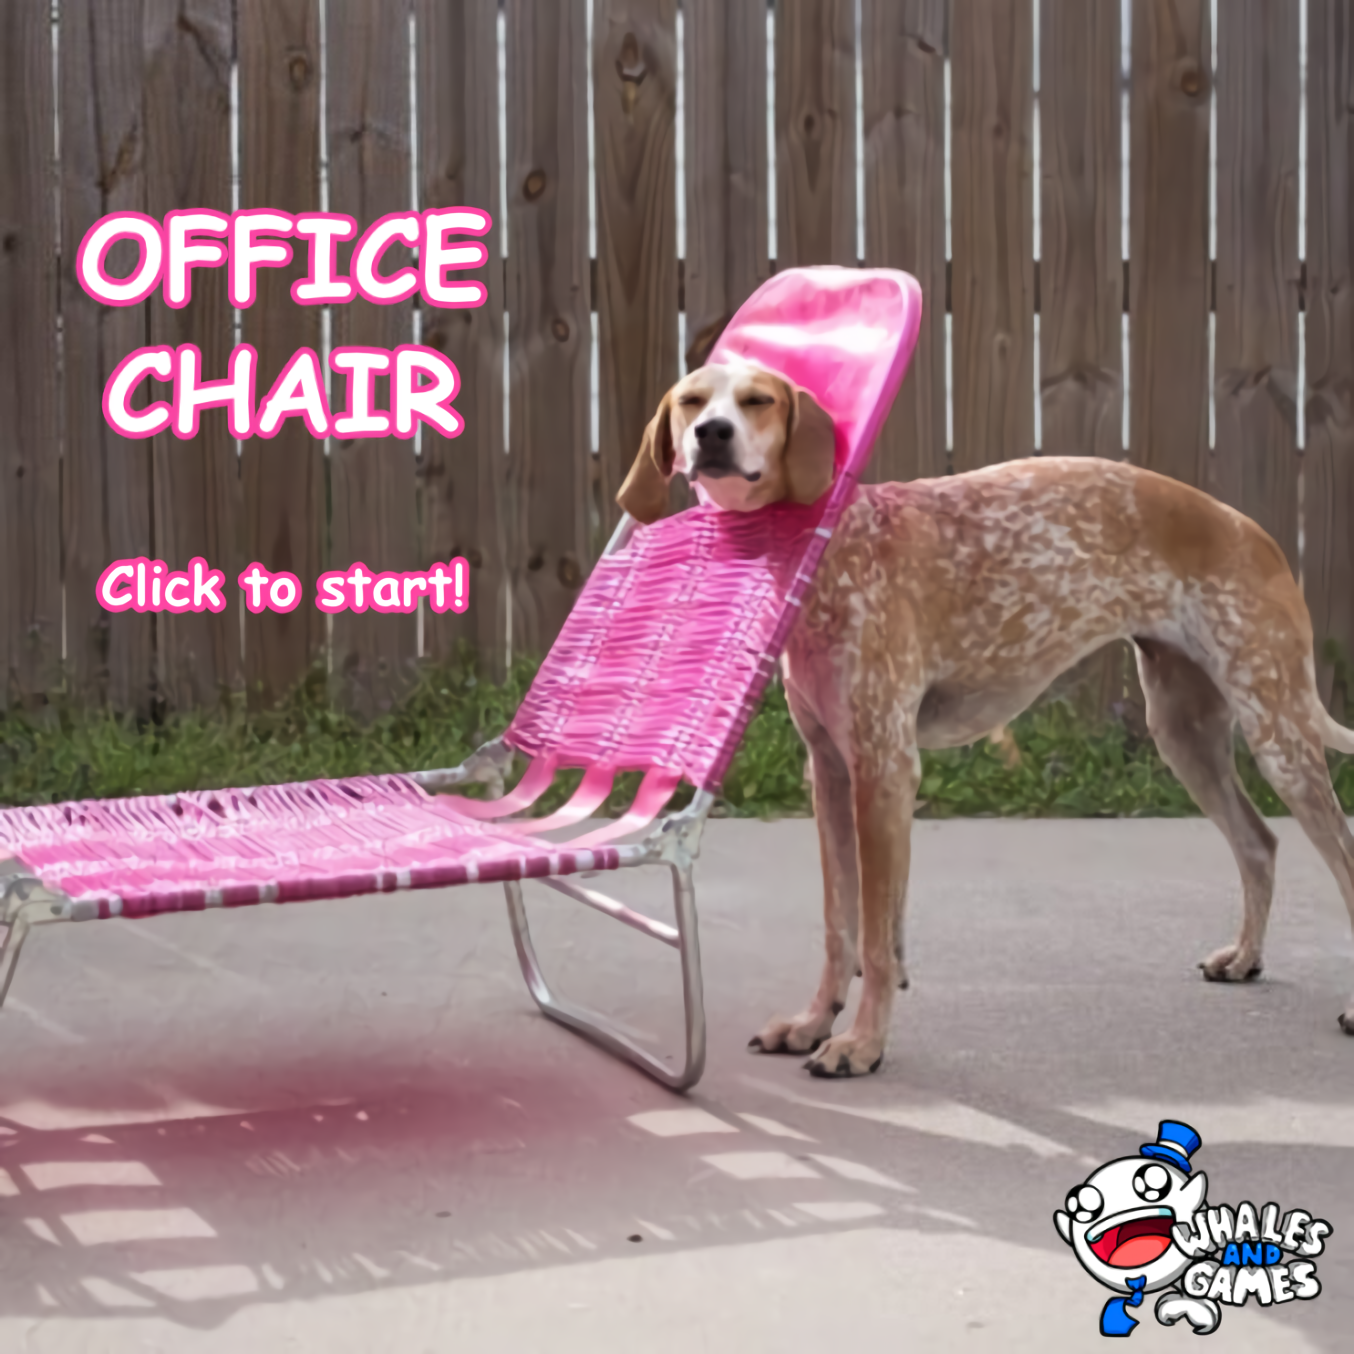 Mock Office Chair Image before we came up with the final Woofice Chair